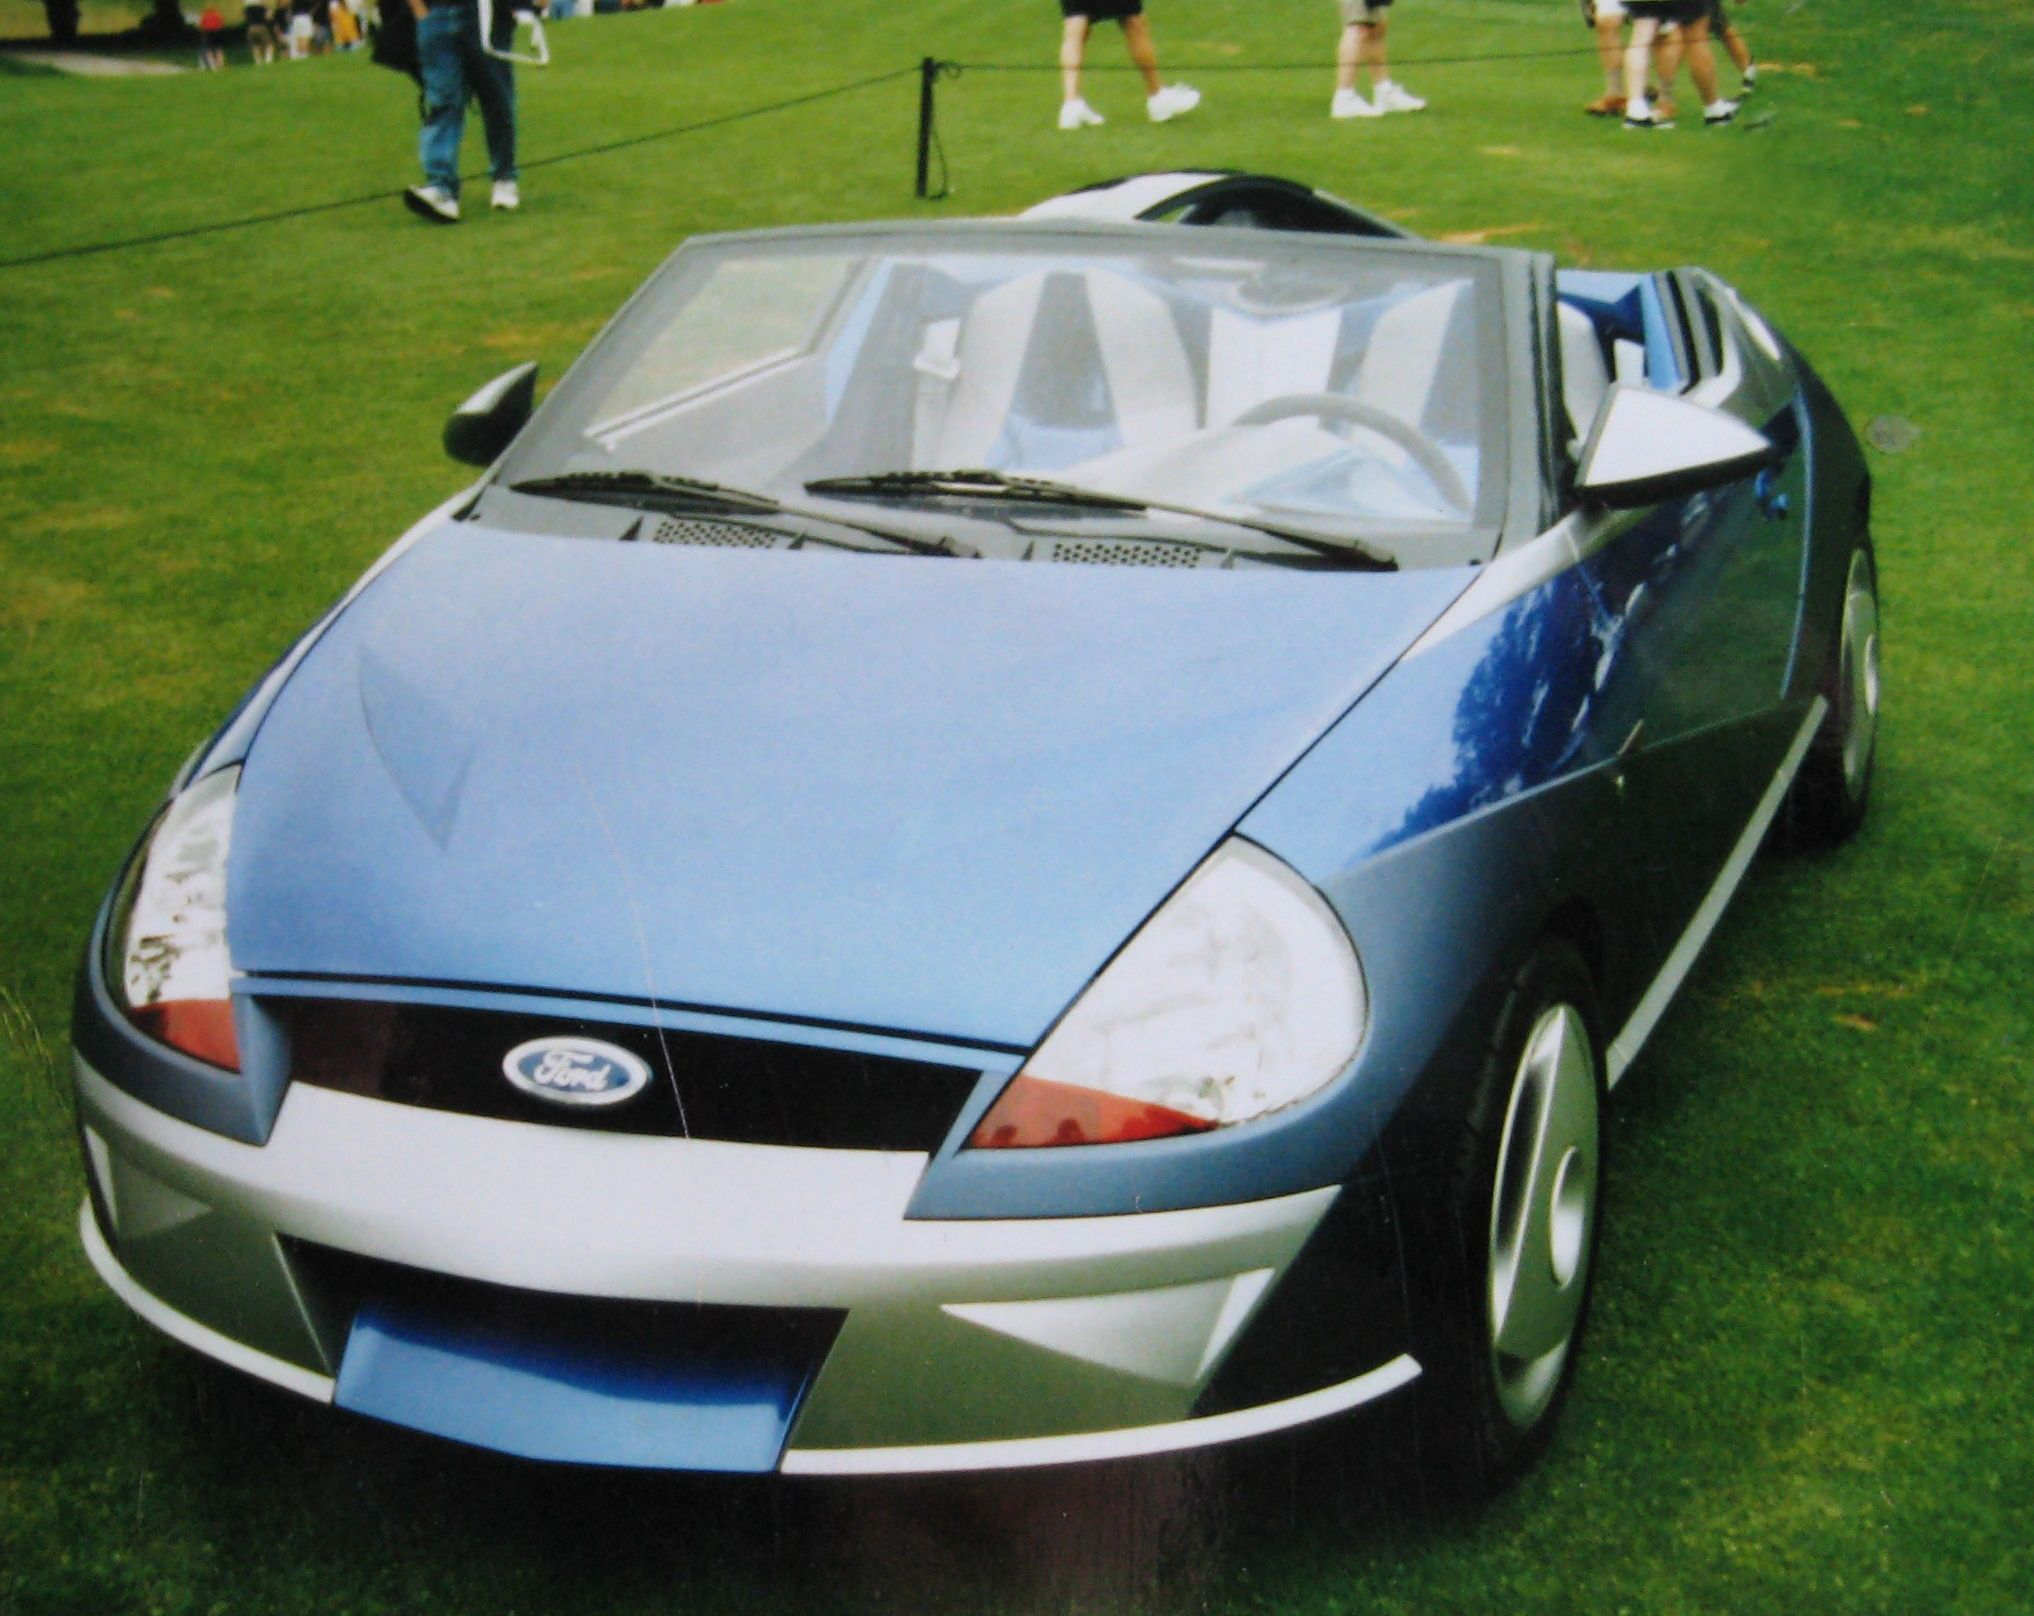 Ford Ghia Saetta The First Generation Ka Took Design Inspiration